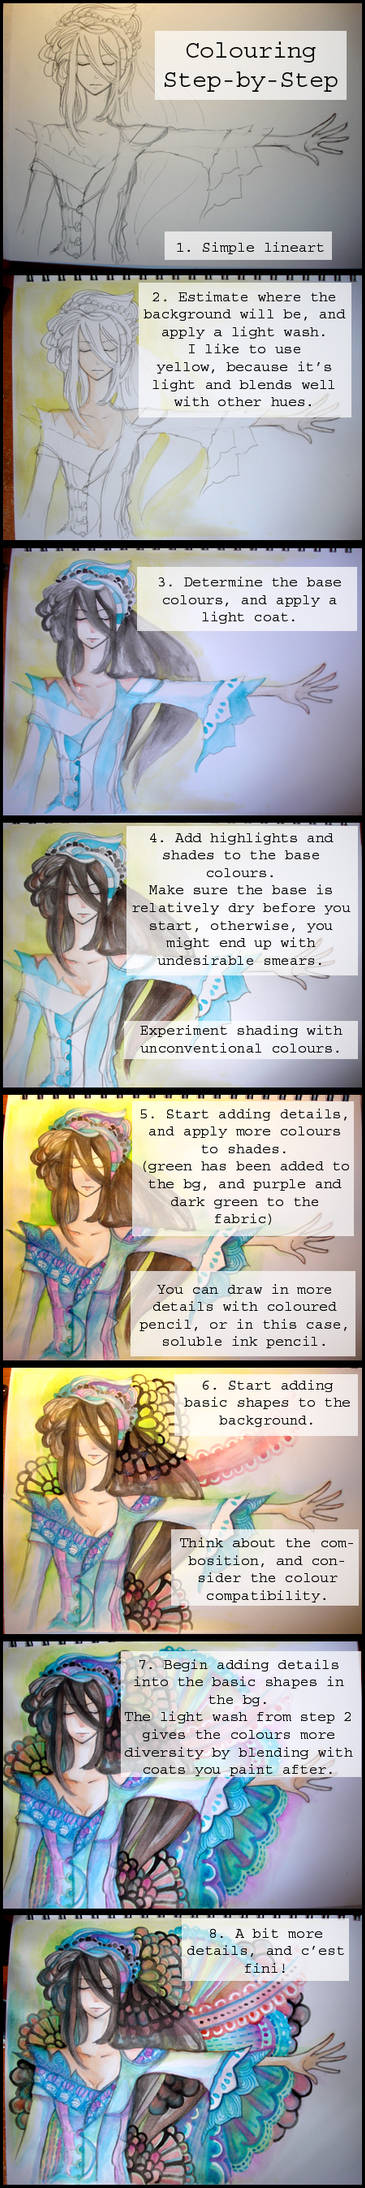 Step-by-Step Colouring